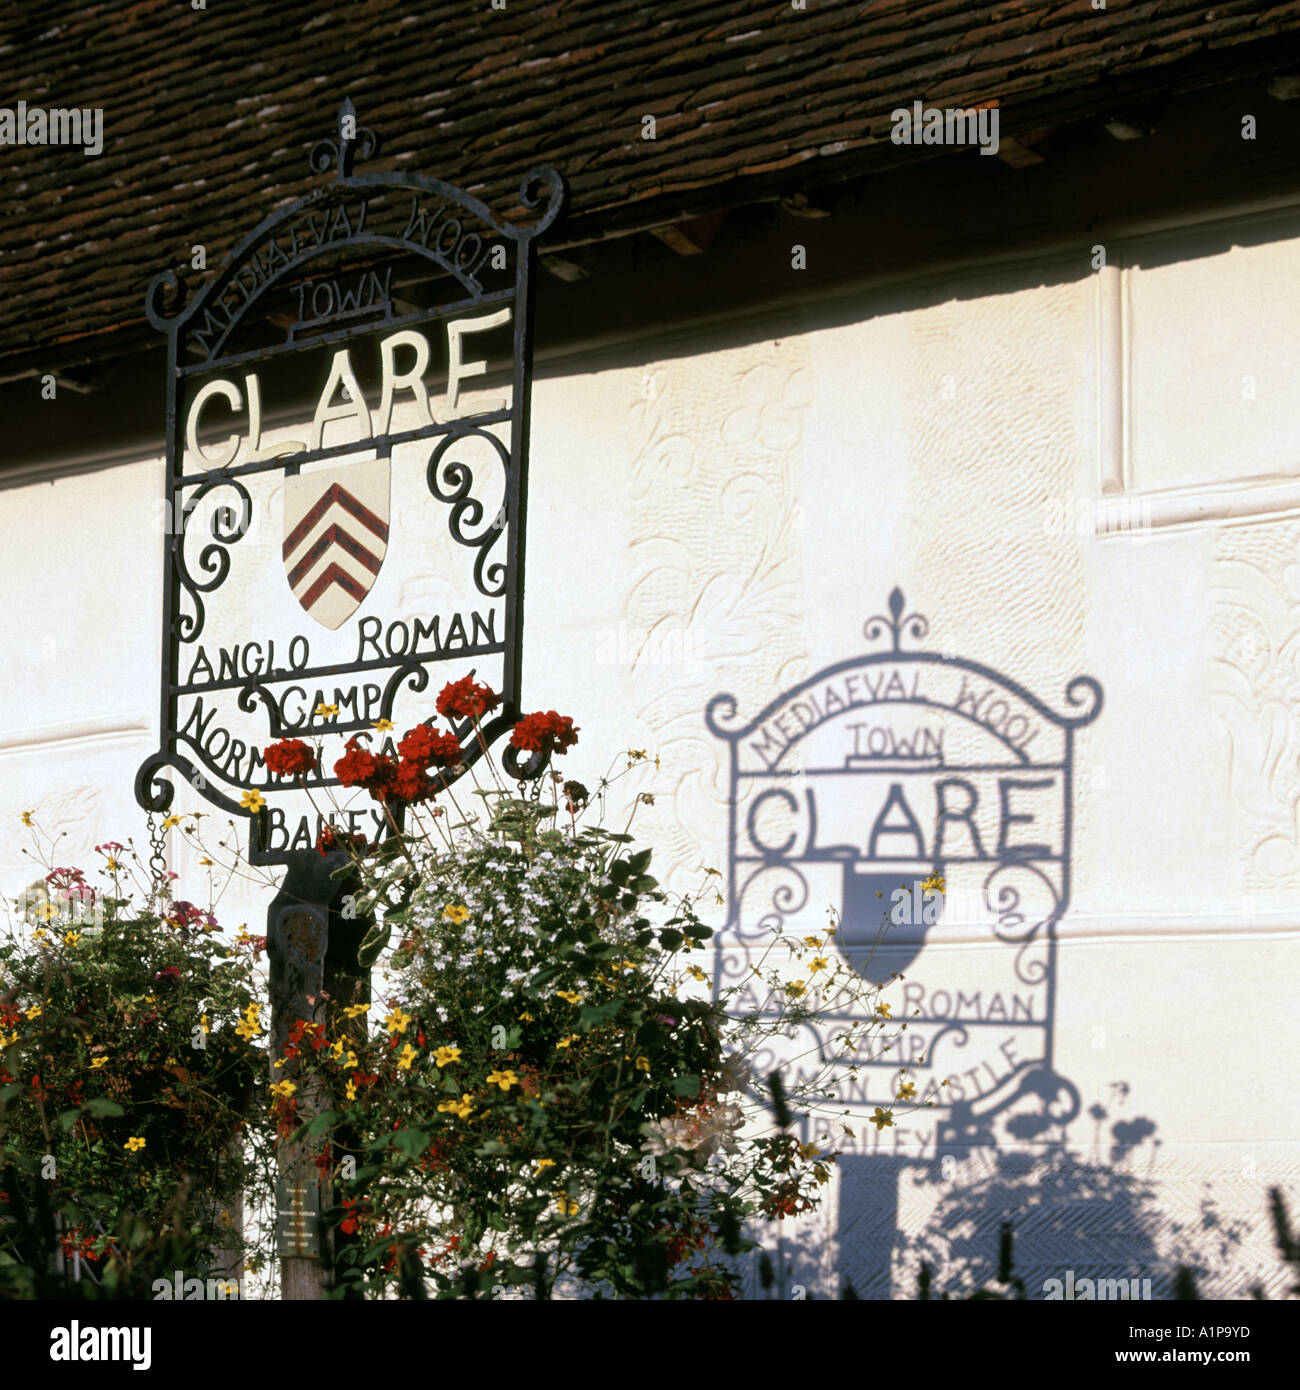 Clare medieval wool town wrought iron sign and shadow cast onto adjacent building - Stock Image